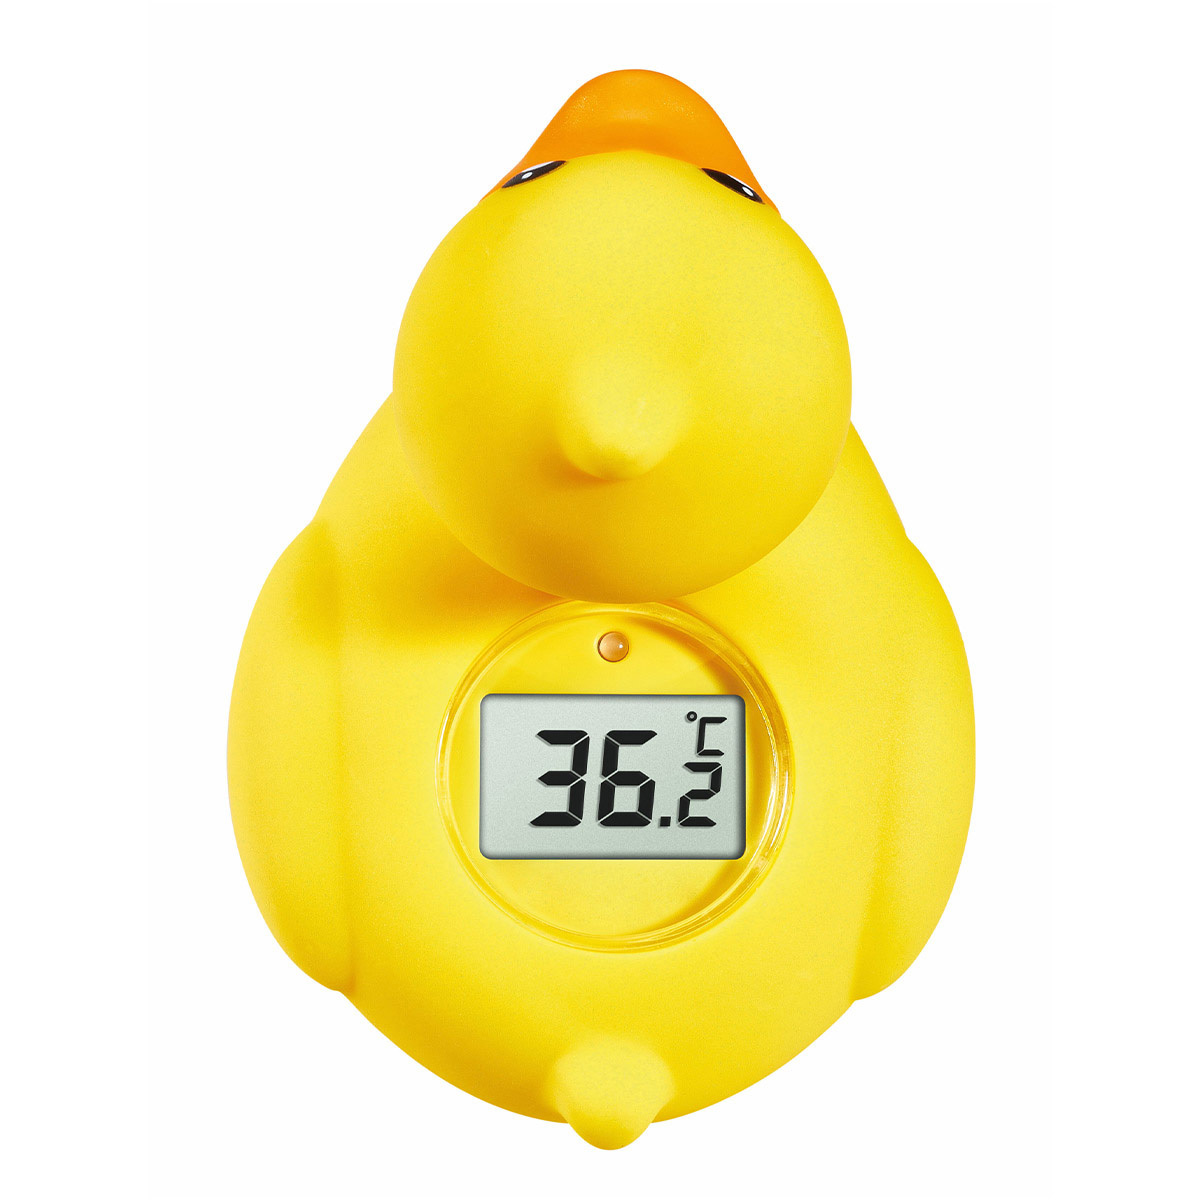 30-2031-07-digitales-badethermometer-ducky-anwendung-1200x1200px.jpg